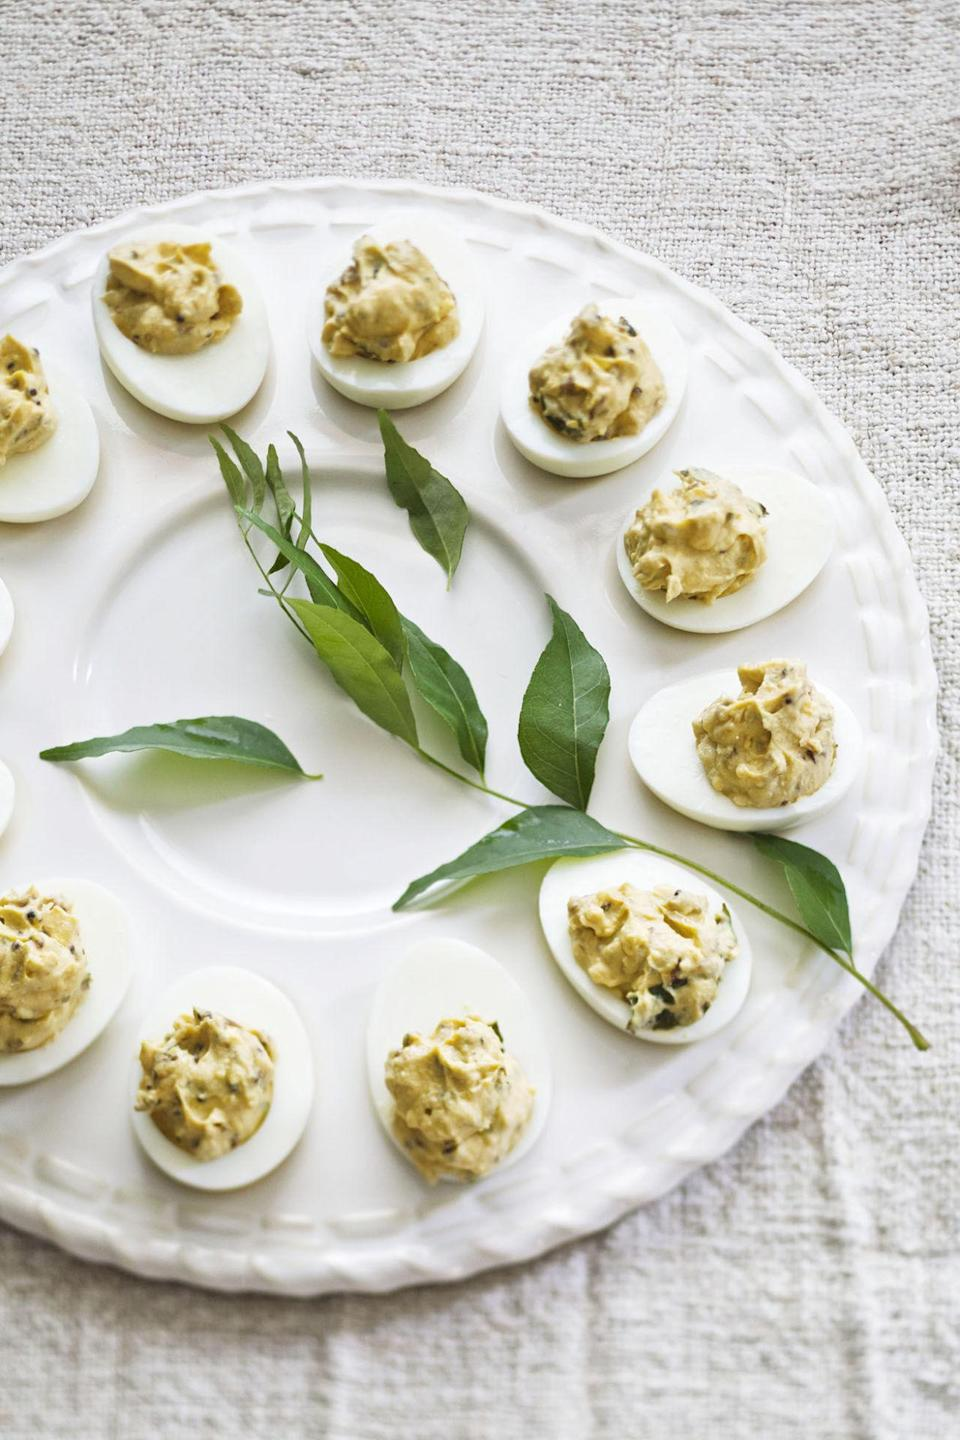 """<p>Bring the heat with these spicy eggs. </p><p><strong><a href=""""http://www.countryliving.com/food-drinks/recipes/a4205/deviled-eggs-cilantro-jalapenos-curry-recipe-clv0712/"""" rel=""""nofollow noopener"""" target=""""_blank"""" data-ylk=""""slk:Get the recipe."""" class=""""link rapid-noclick-resp"""">Get the recipe.</a></strong></p><p><strong>RELATED: </strong><a href=""""http://www.countryliving.com/food-drinks/g1642/easter-brunch-ideas/"""" rel=""""nofollow noopener"""" target=""""_blank"""" data-ylk=""""slk:Recipes for Your Best-Ever Easter Brunch"""" class=""""link rapid-noclick-resp"""">Recipes for Your Best-Ever Easter Brunch</a></p>"""